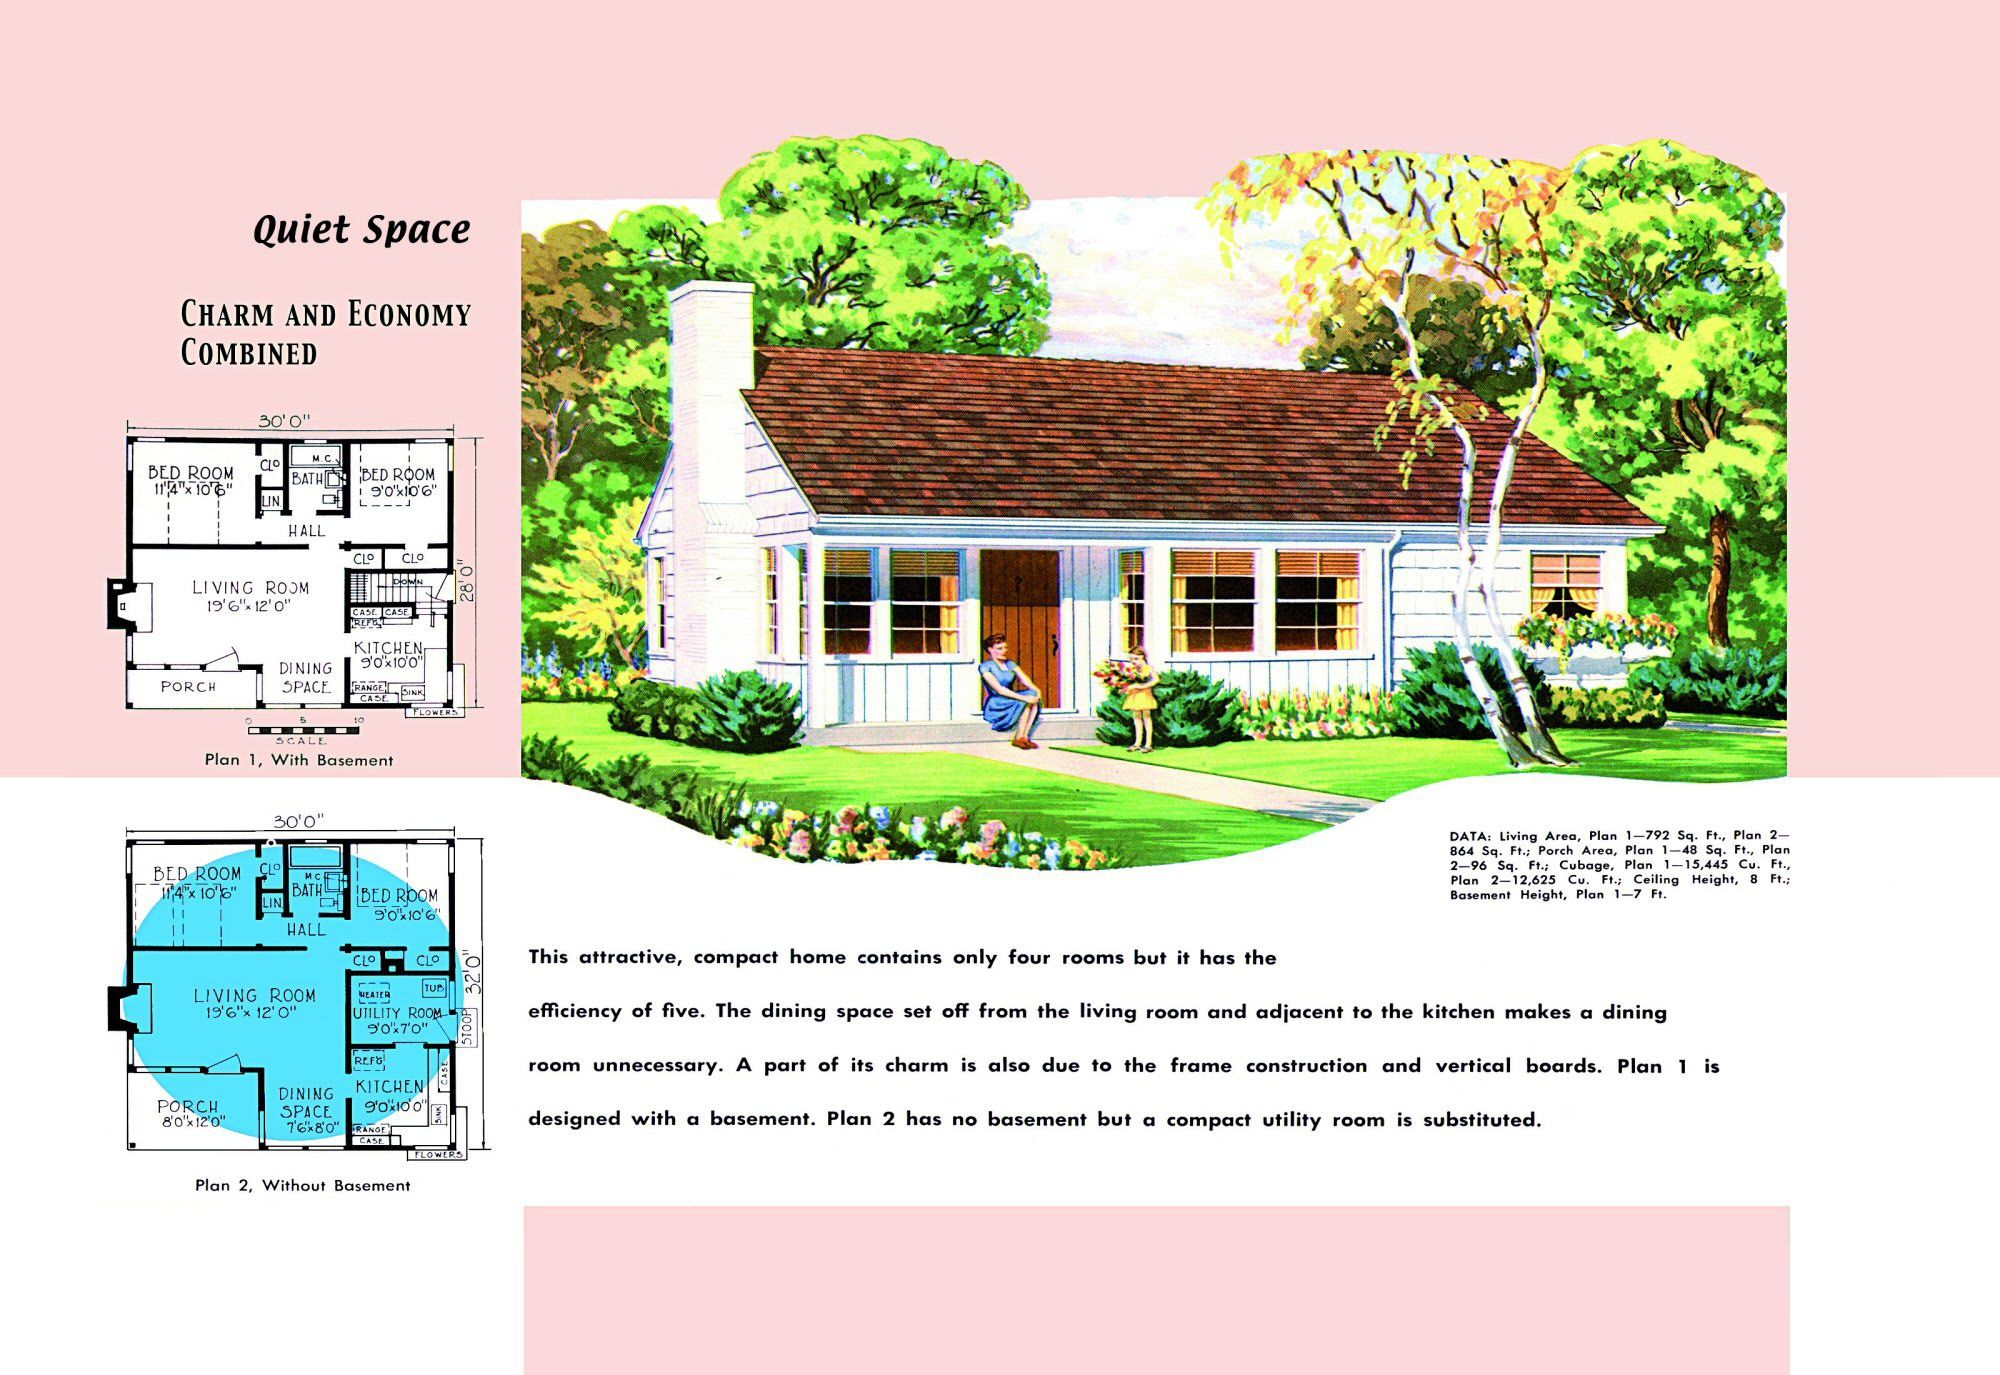 emejing 1950s ranch house floor plans pictures today designs i know that house traditional yet minimal design minimal 1950s ranch home house plans